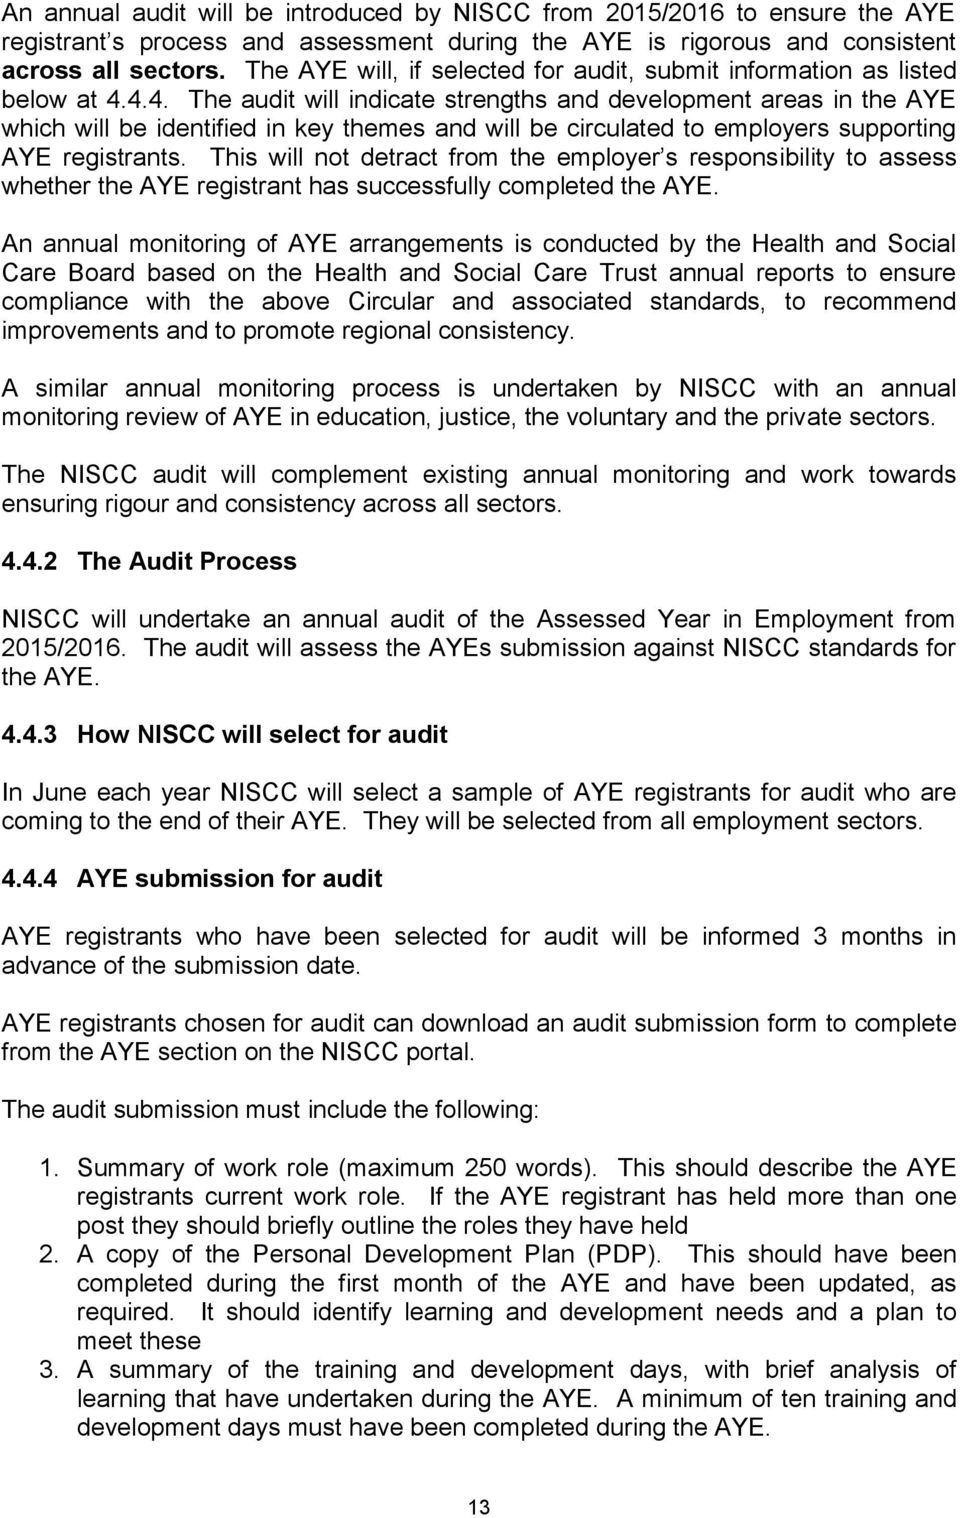 4.4. The audit will indicate strengths and development areas in the AYE which will be identified in key themes and will be circulated to employers supporting AYE registrants.